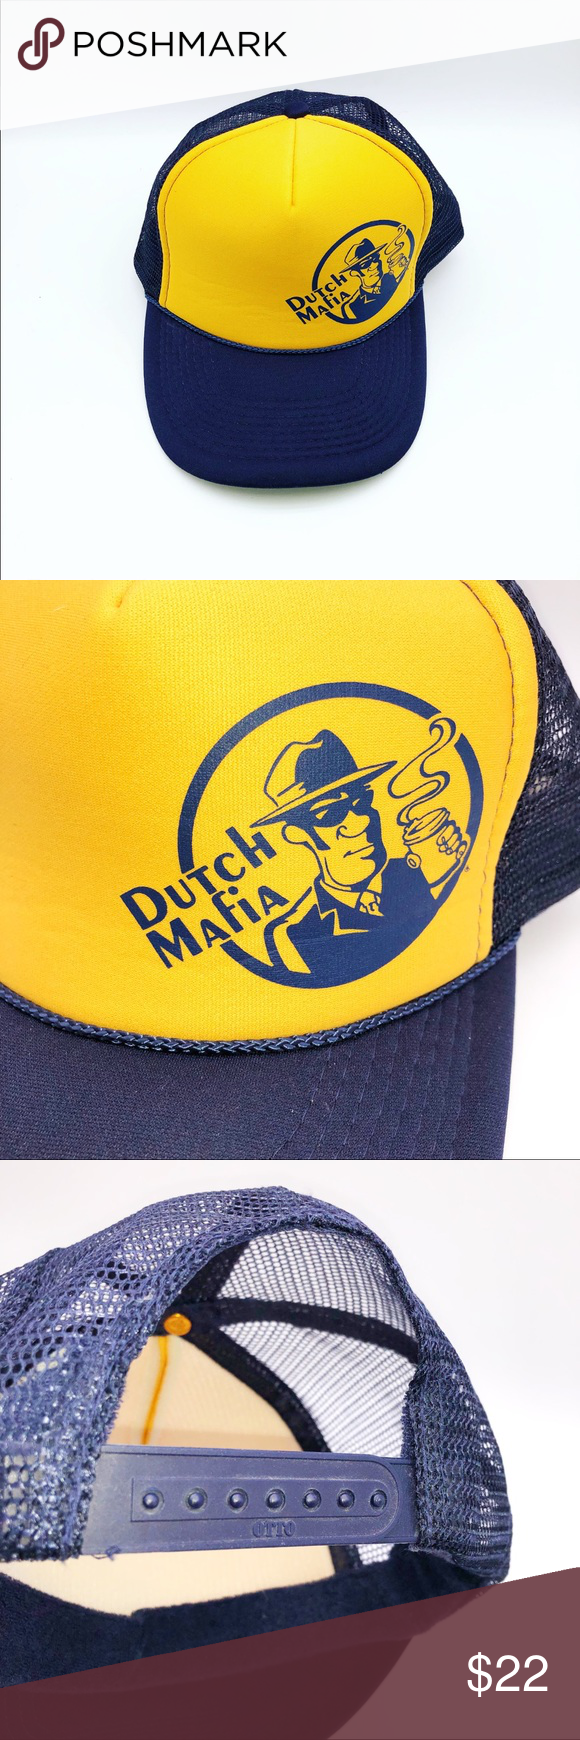 Dutch Bros Dutch Mafia Snapback Hat Dutch Bros Dutch Mafia Snapback Hat   •Mesh  •Adjustable back  In good preowned condition. Accessories Hats #dutchbros Dutch Bros Dutch Mafia Snapback Hat Dutch Bros Dutch Mafia Snapback Hat   •Mesh  •Adjustable back  In good preowned condition. Accessories Hats #dutchbros